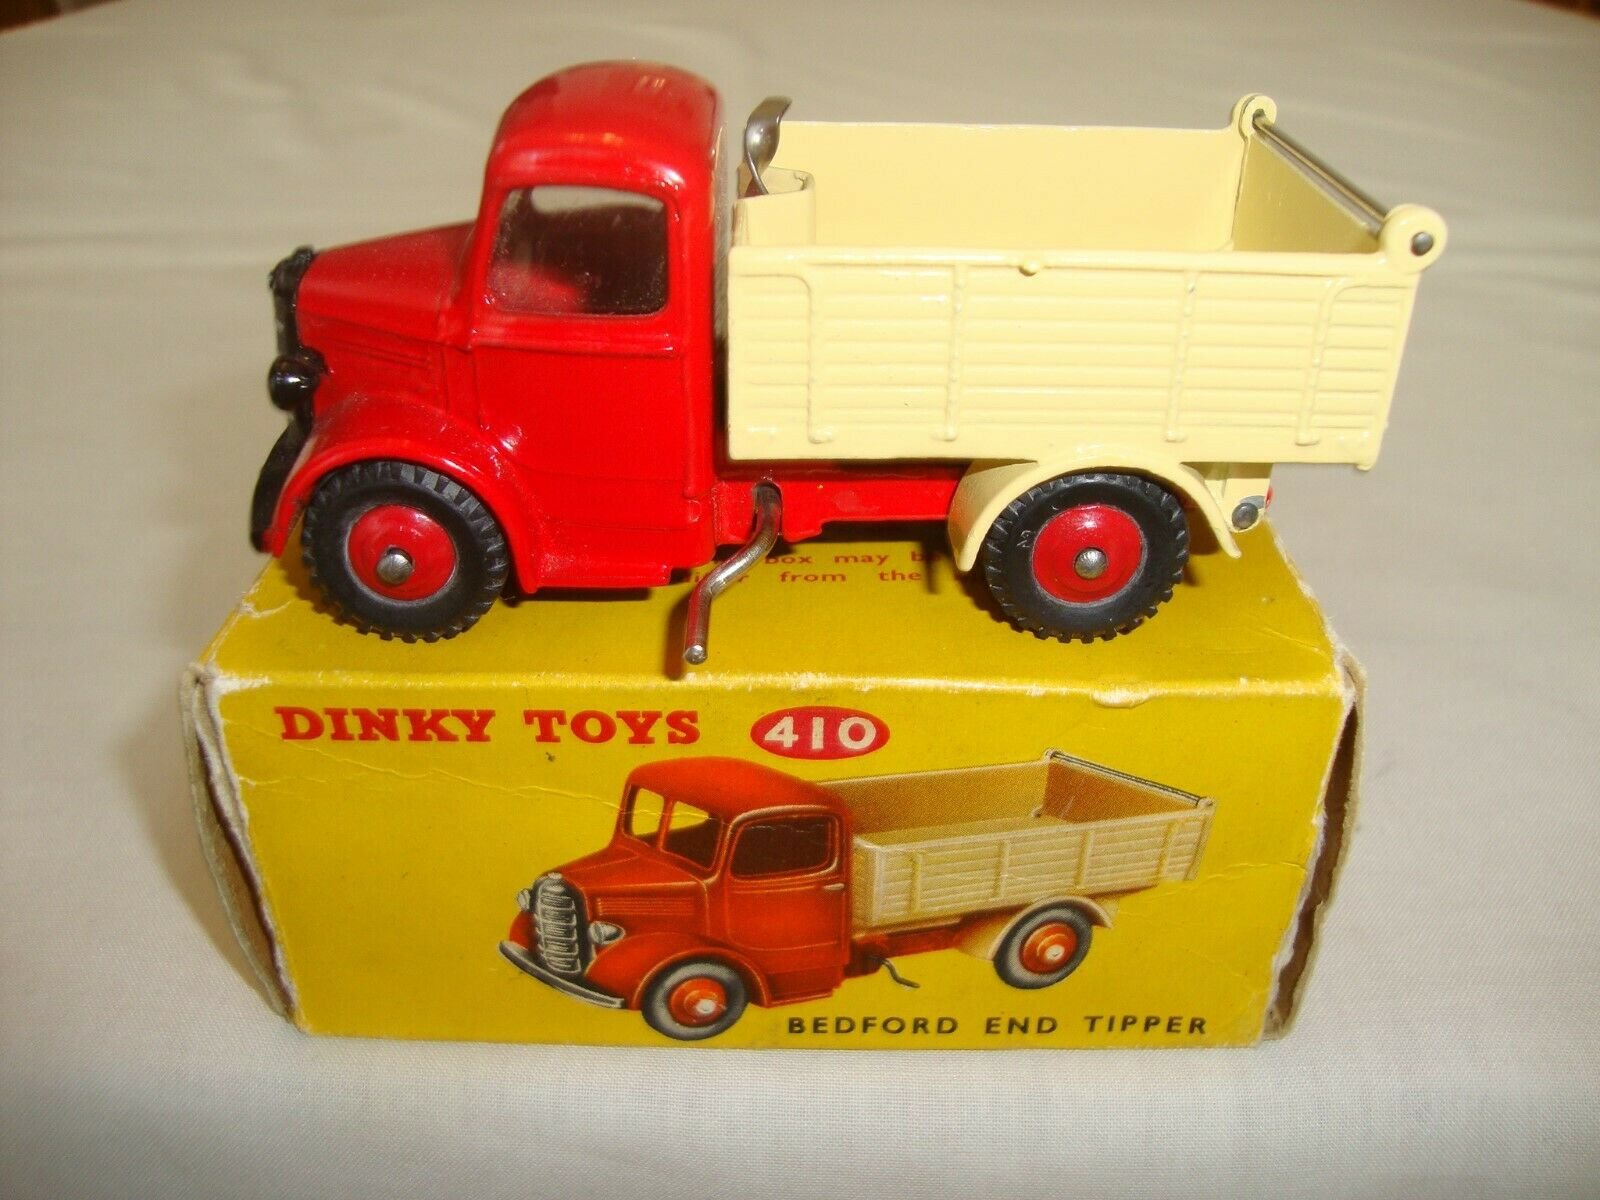 DINKY 410 BEDFORD END TIPPER (SvoitureCE TRANSITION VERSION)  - NR MINT in orig BOX  offre spéciale